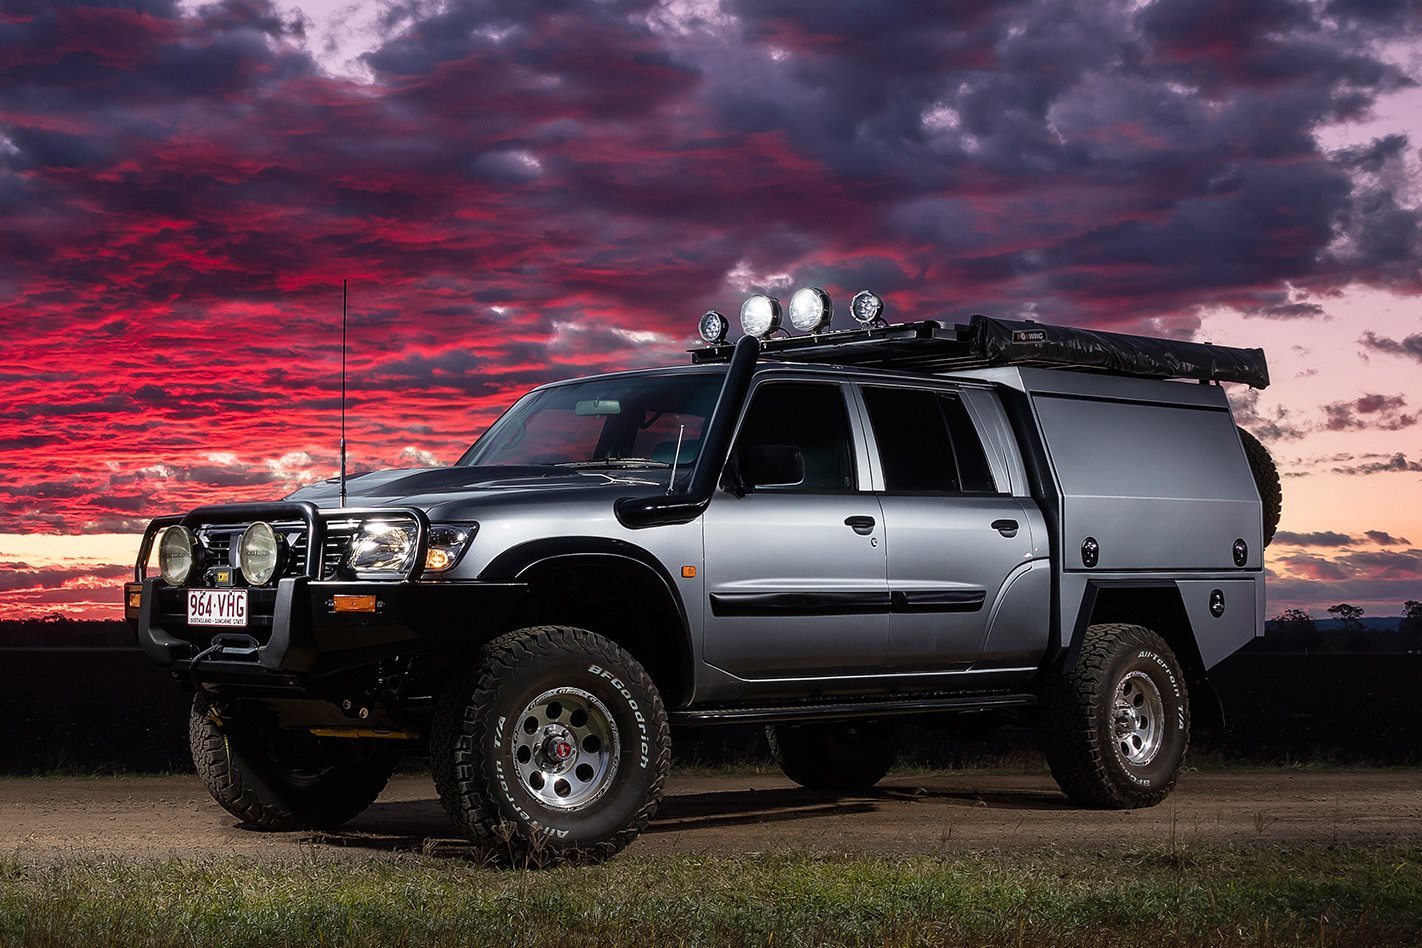 rv creations dual cab nissan gu patrol custom 4x4 4x4 australia. Black Bedroom Furniture Sets. Home Design Ideas